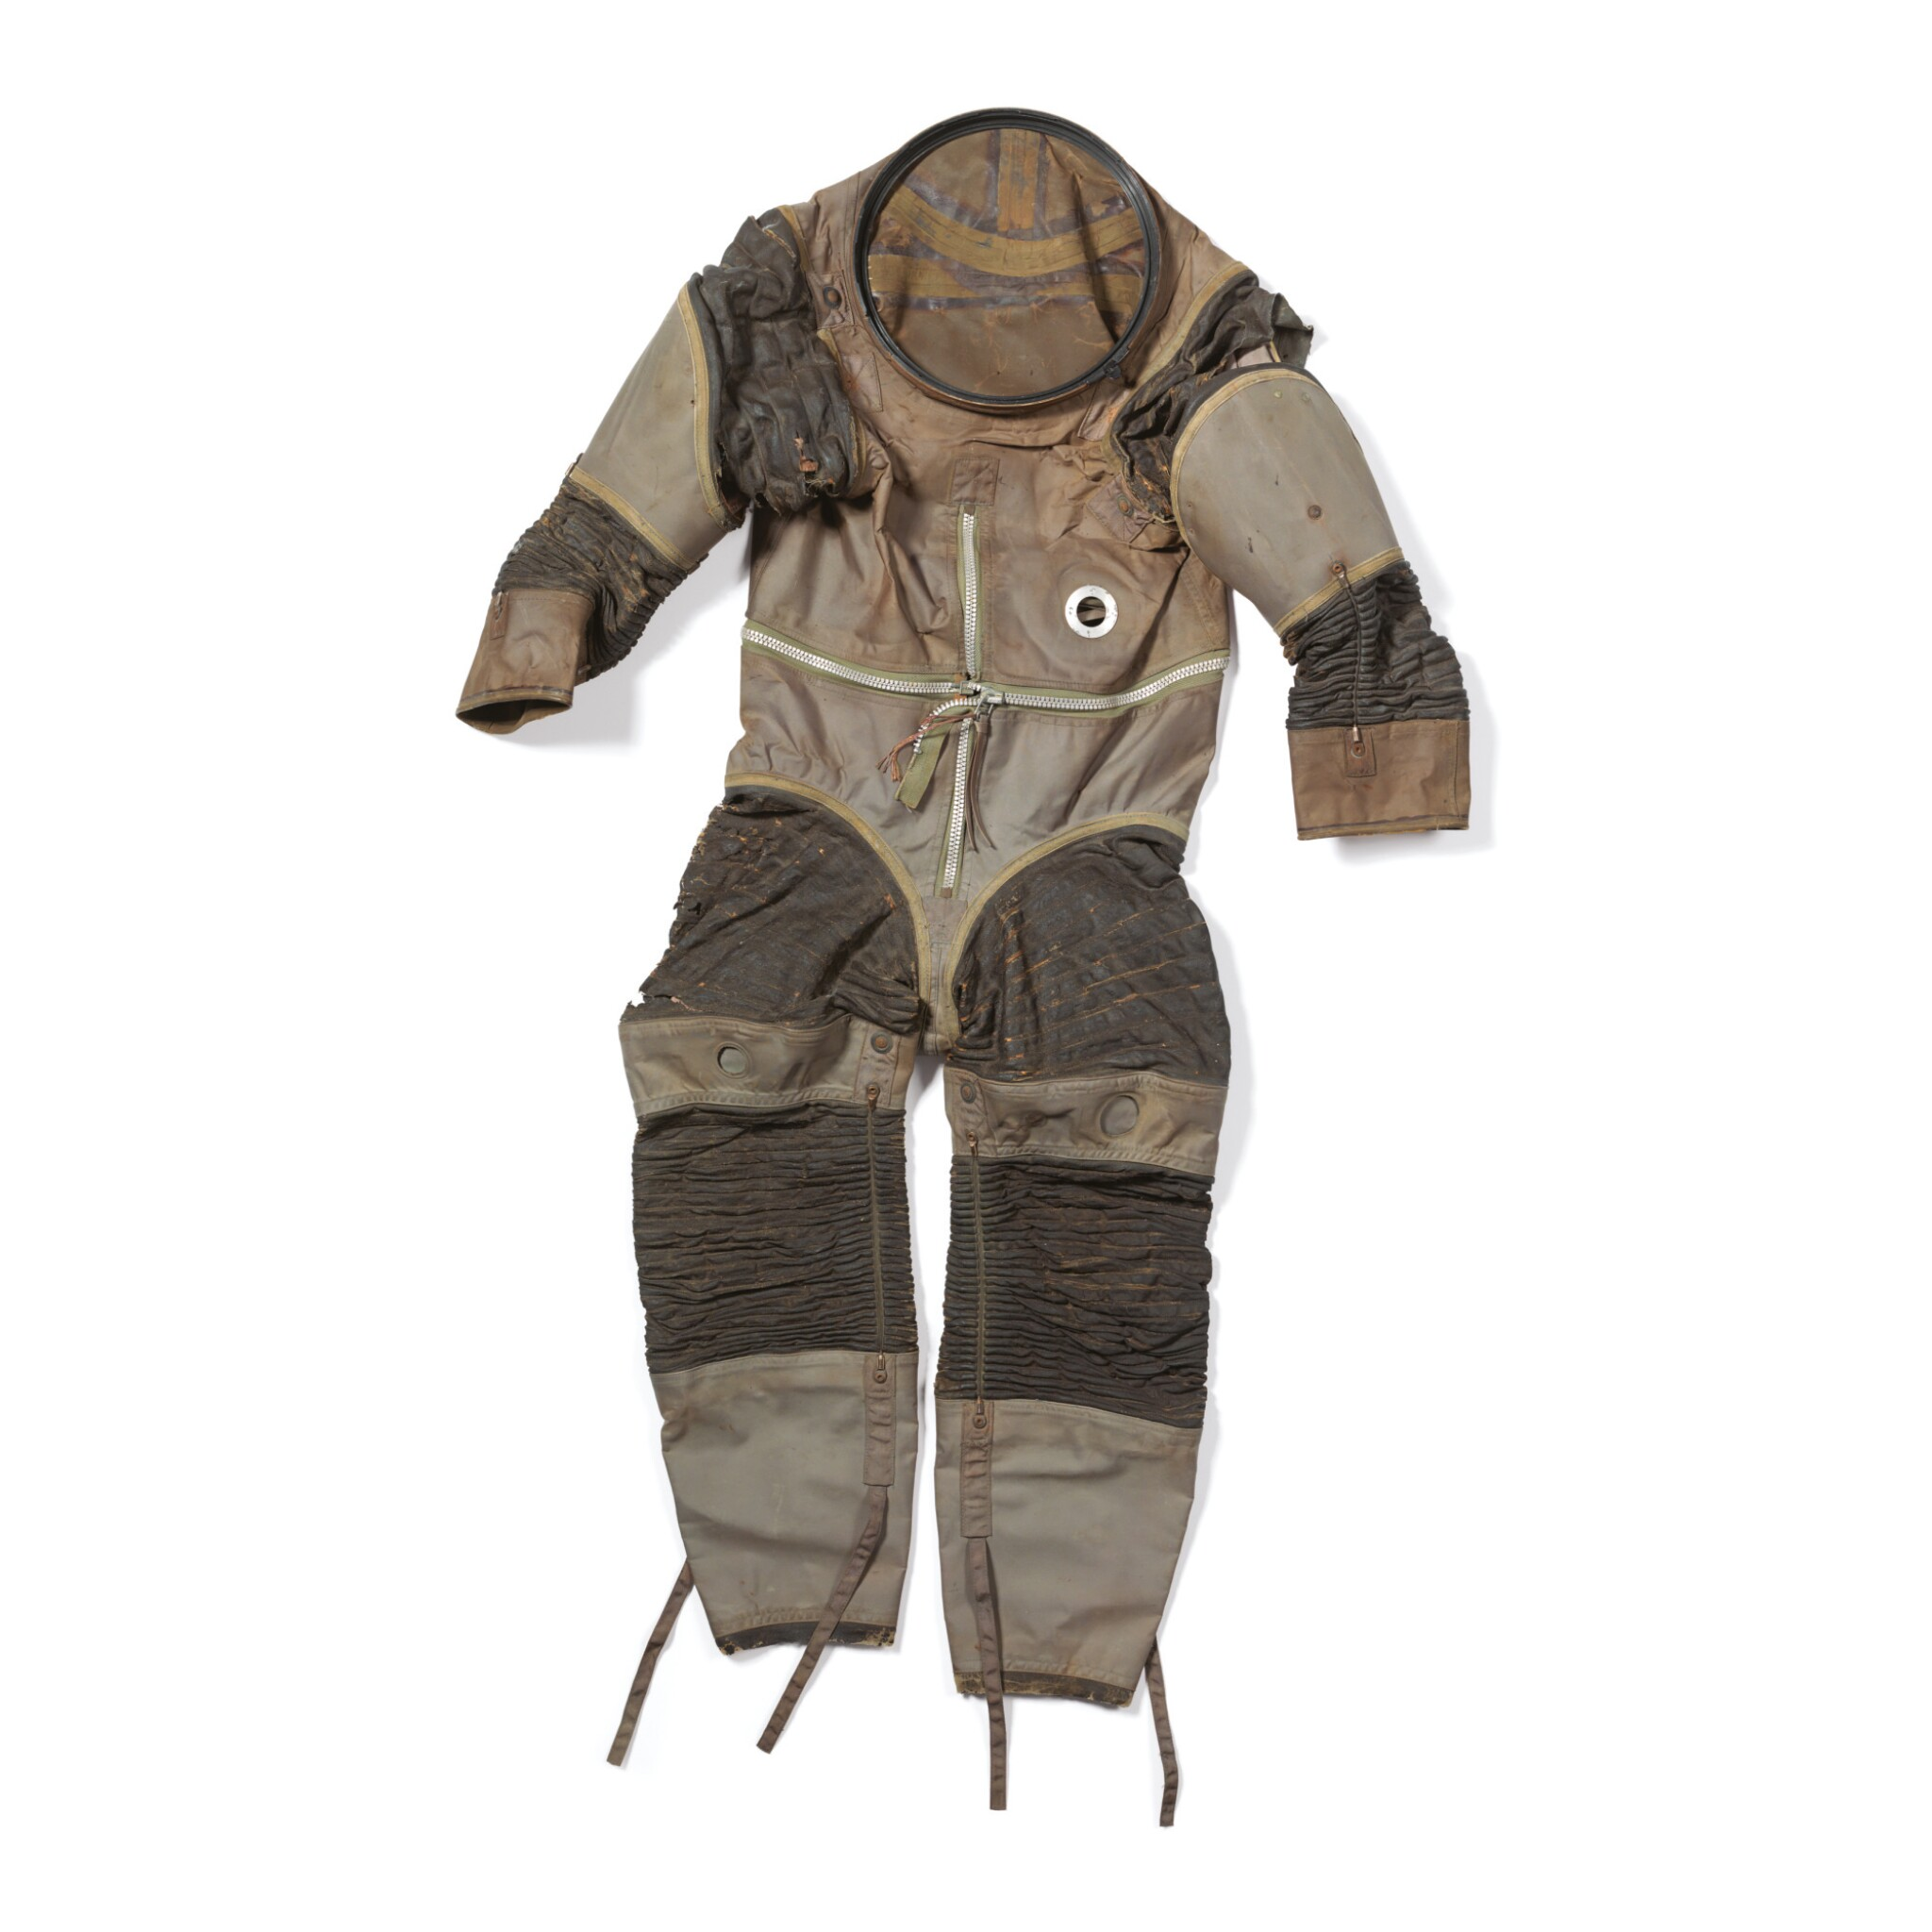 View full screen - View 1 of Lot 10. APOLLO PROTOTYPE SPD-117 SPACESUIT, INTERNATIONAL LATEX CORPORATION, CA 1962.